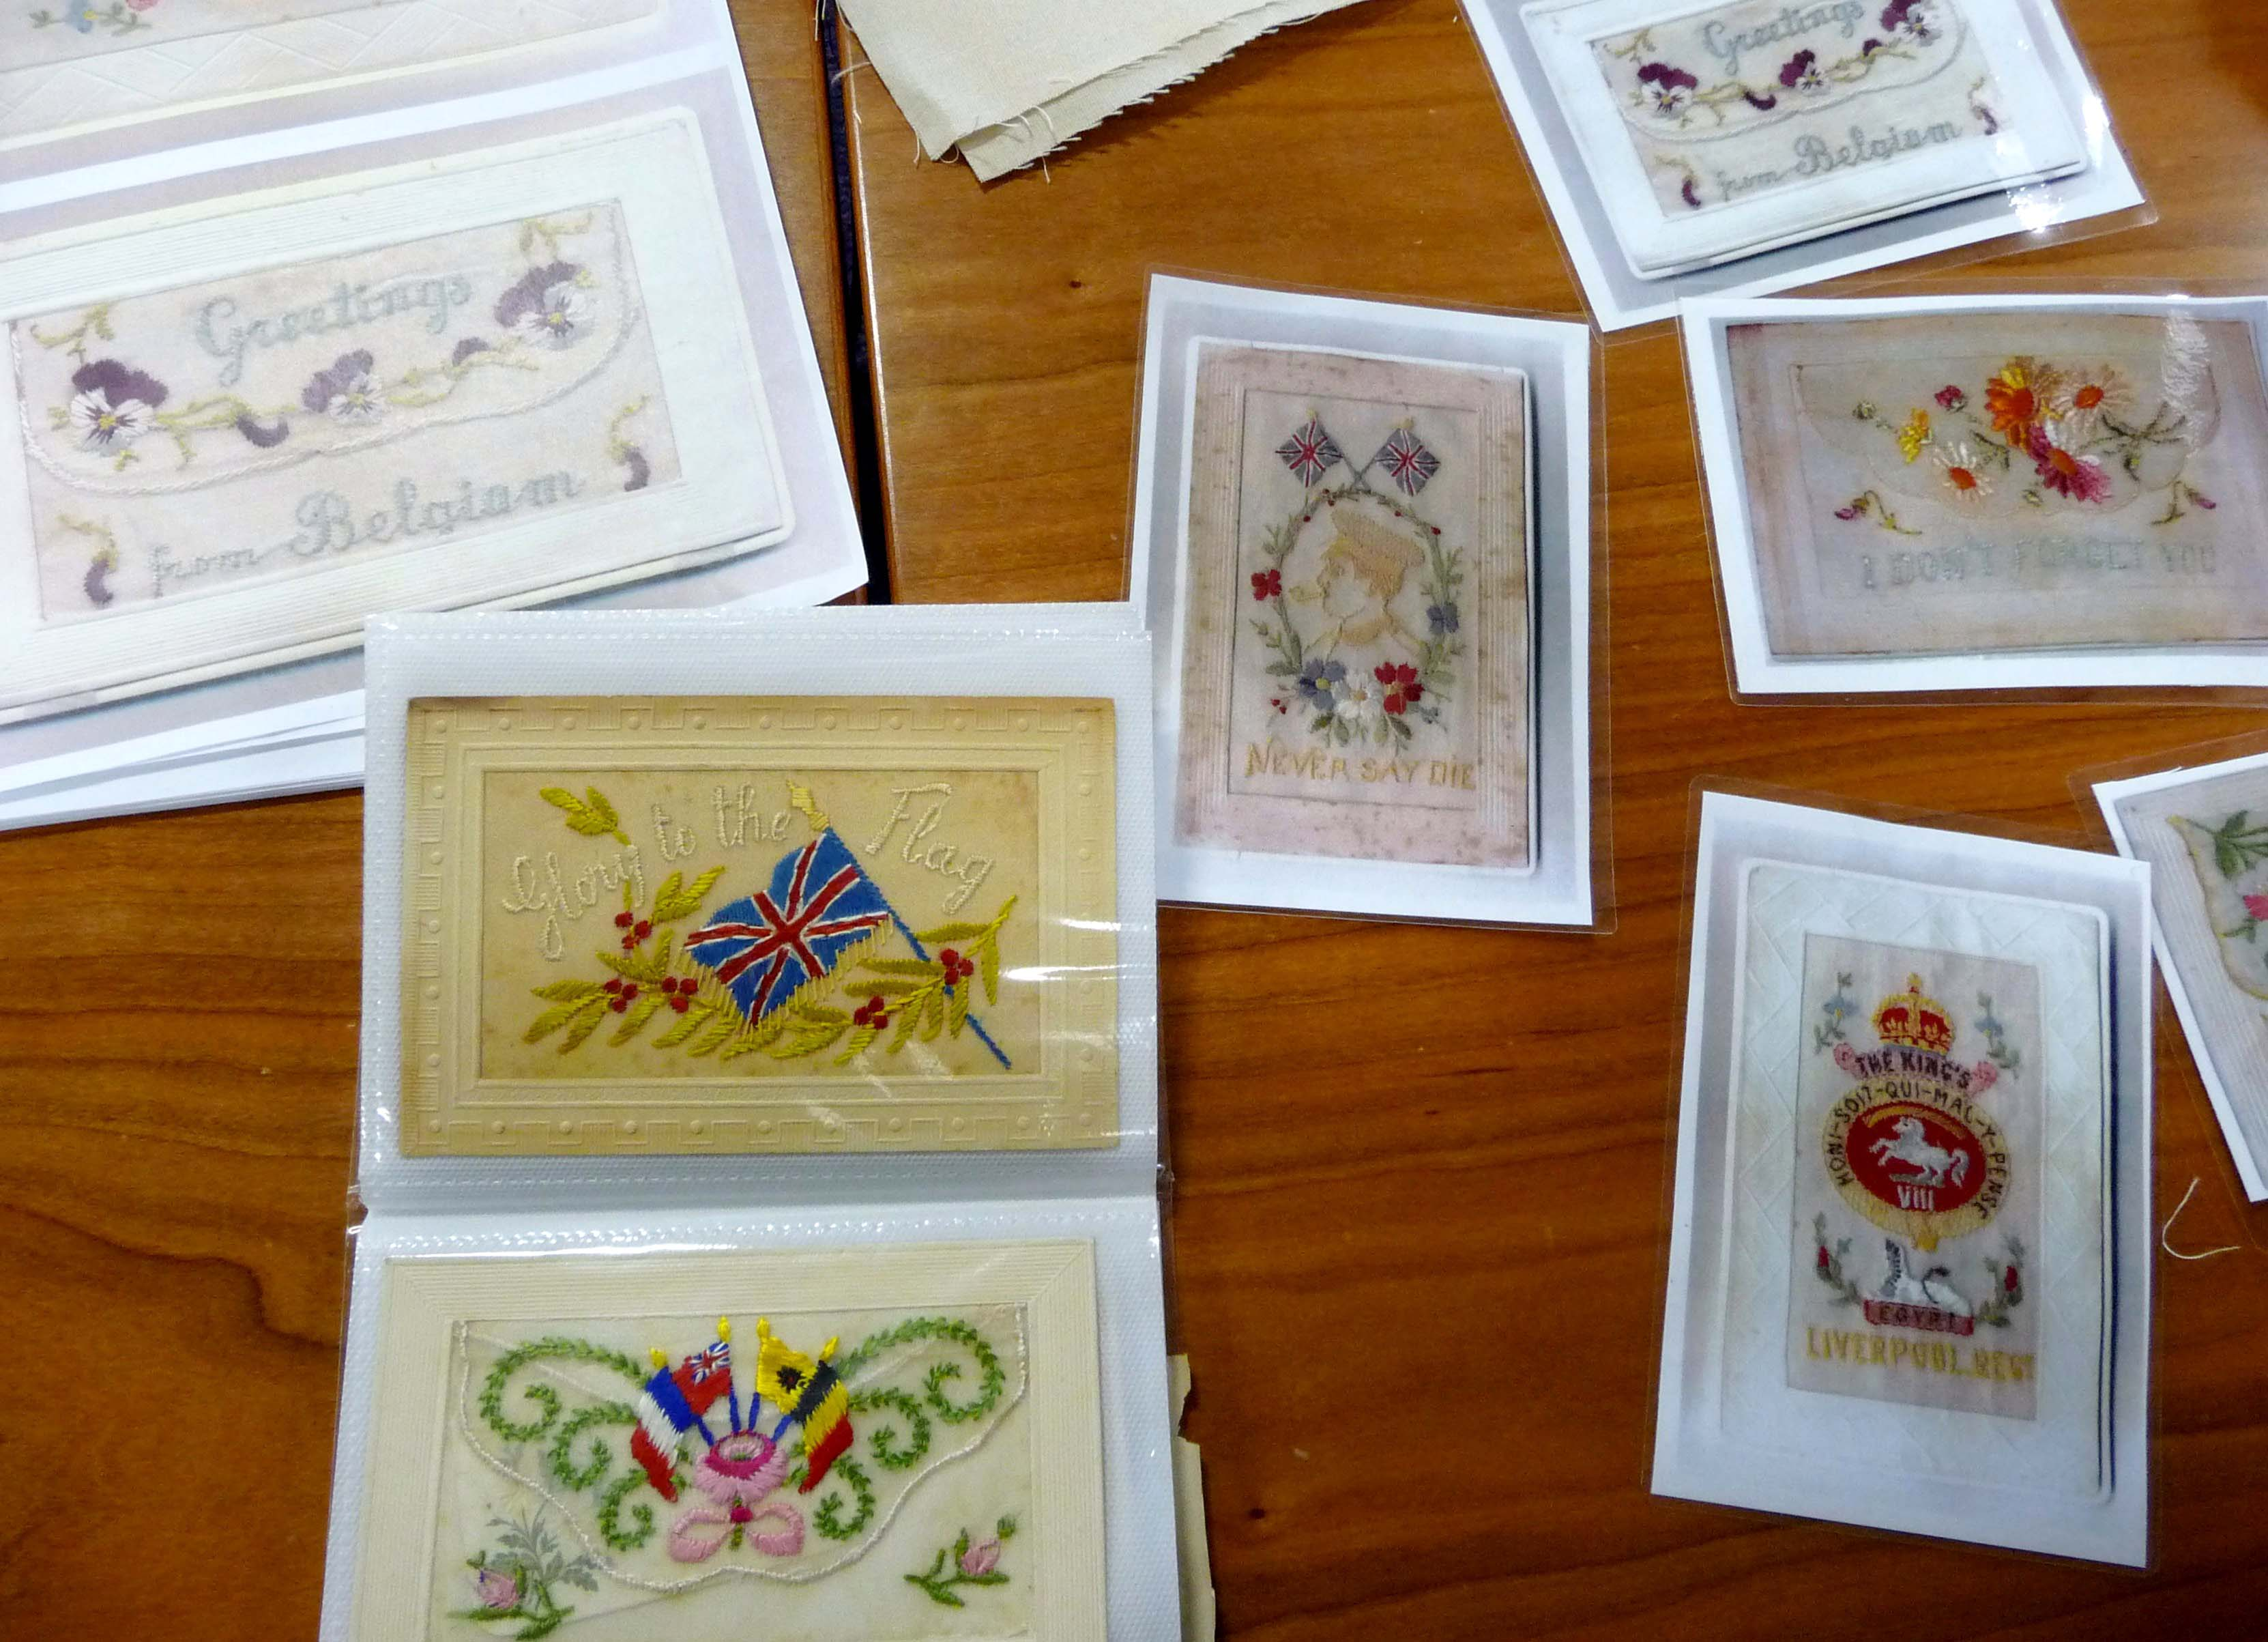 these are some old embroidered postcards that we showed the girls to inspire them